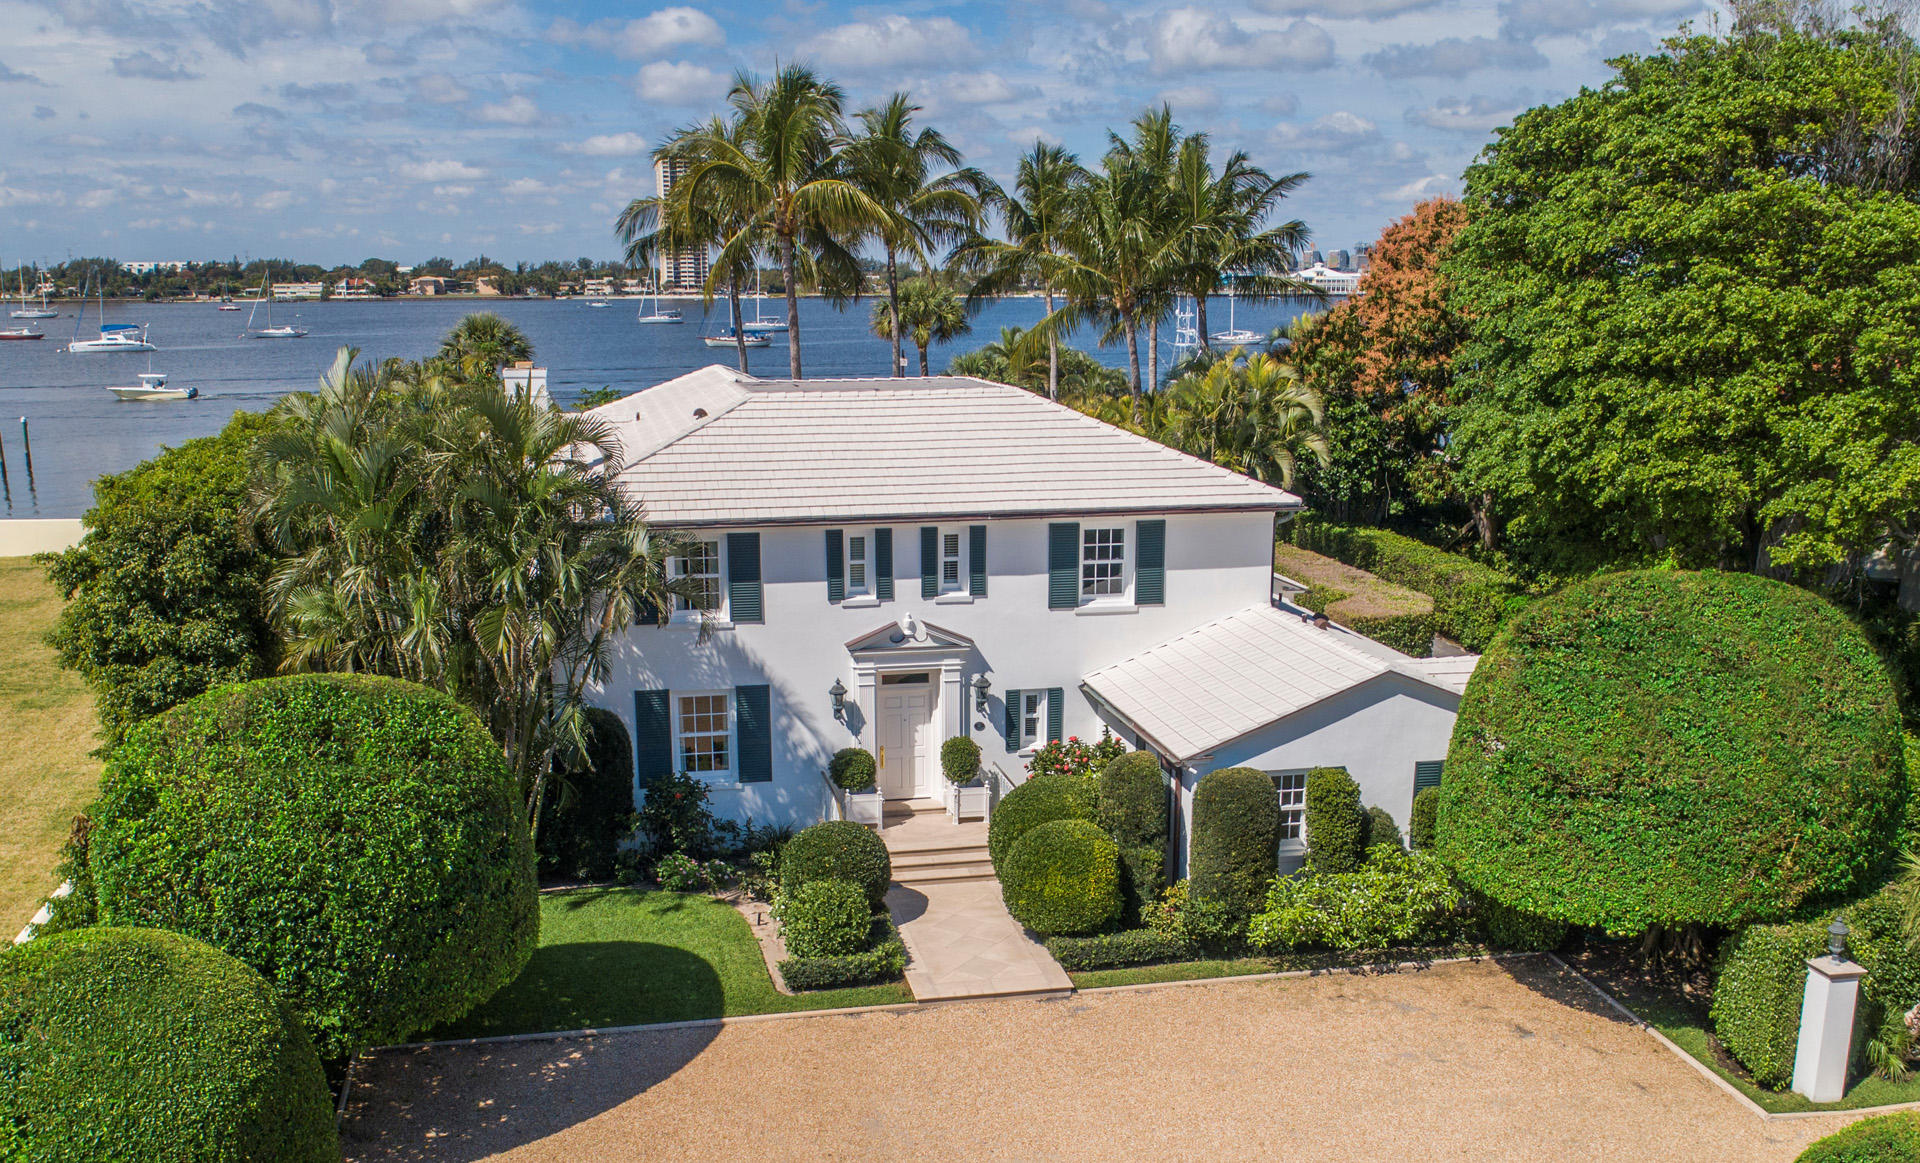 New Home for sale at 1284 Lake Way in Palm Beach